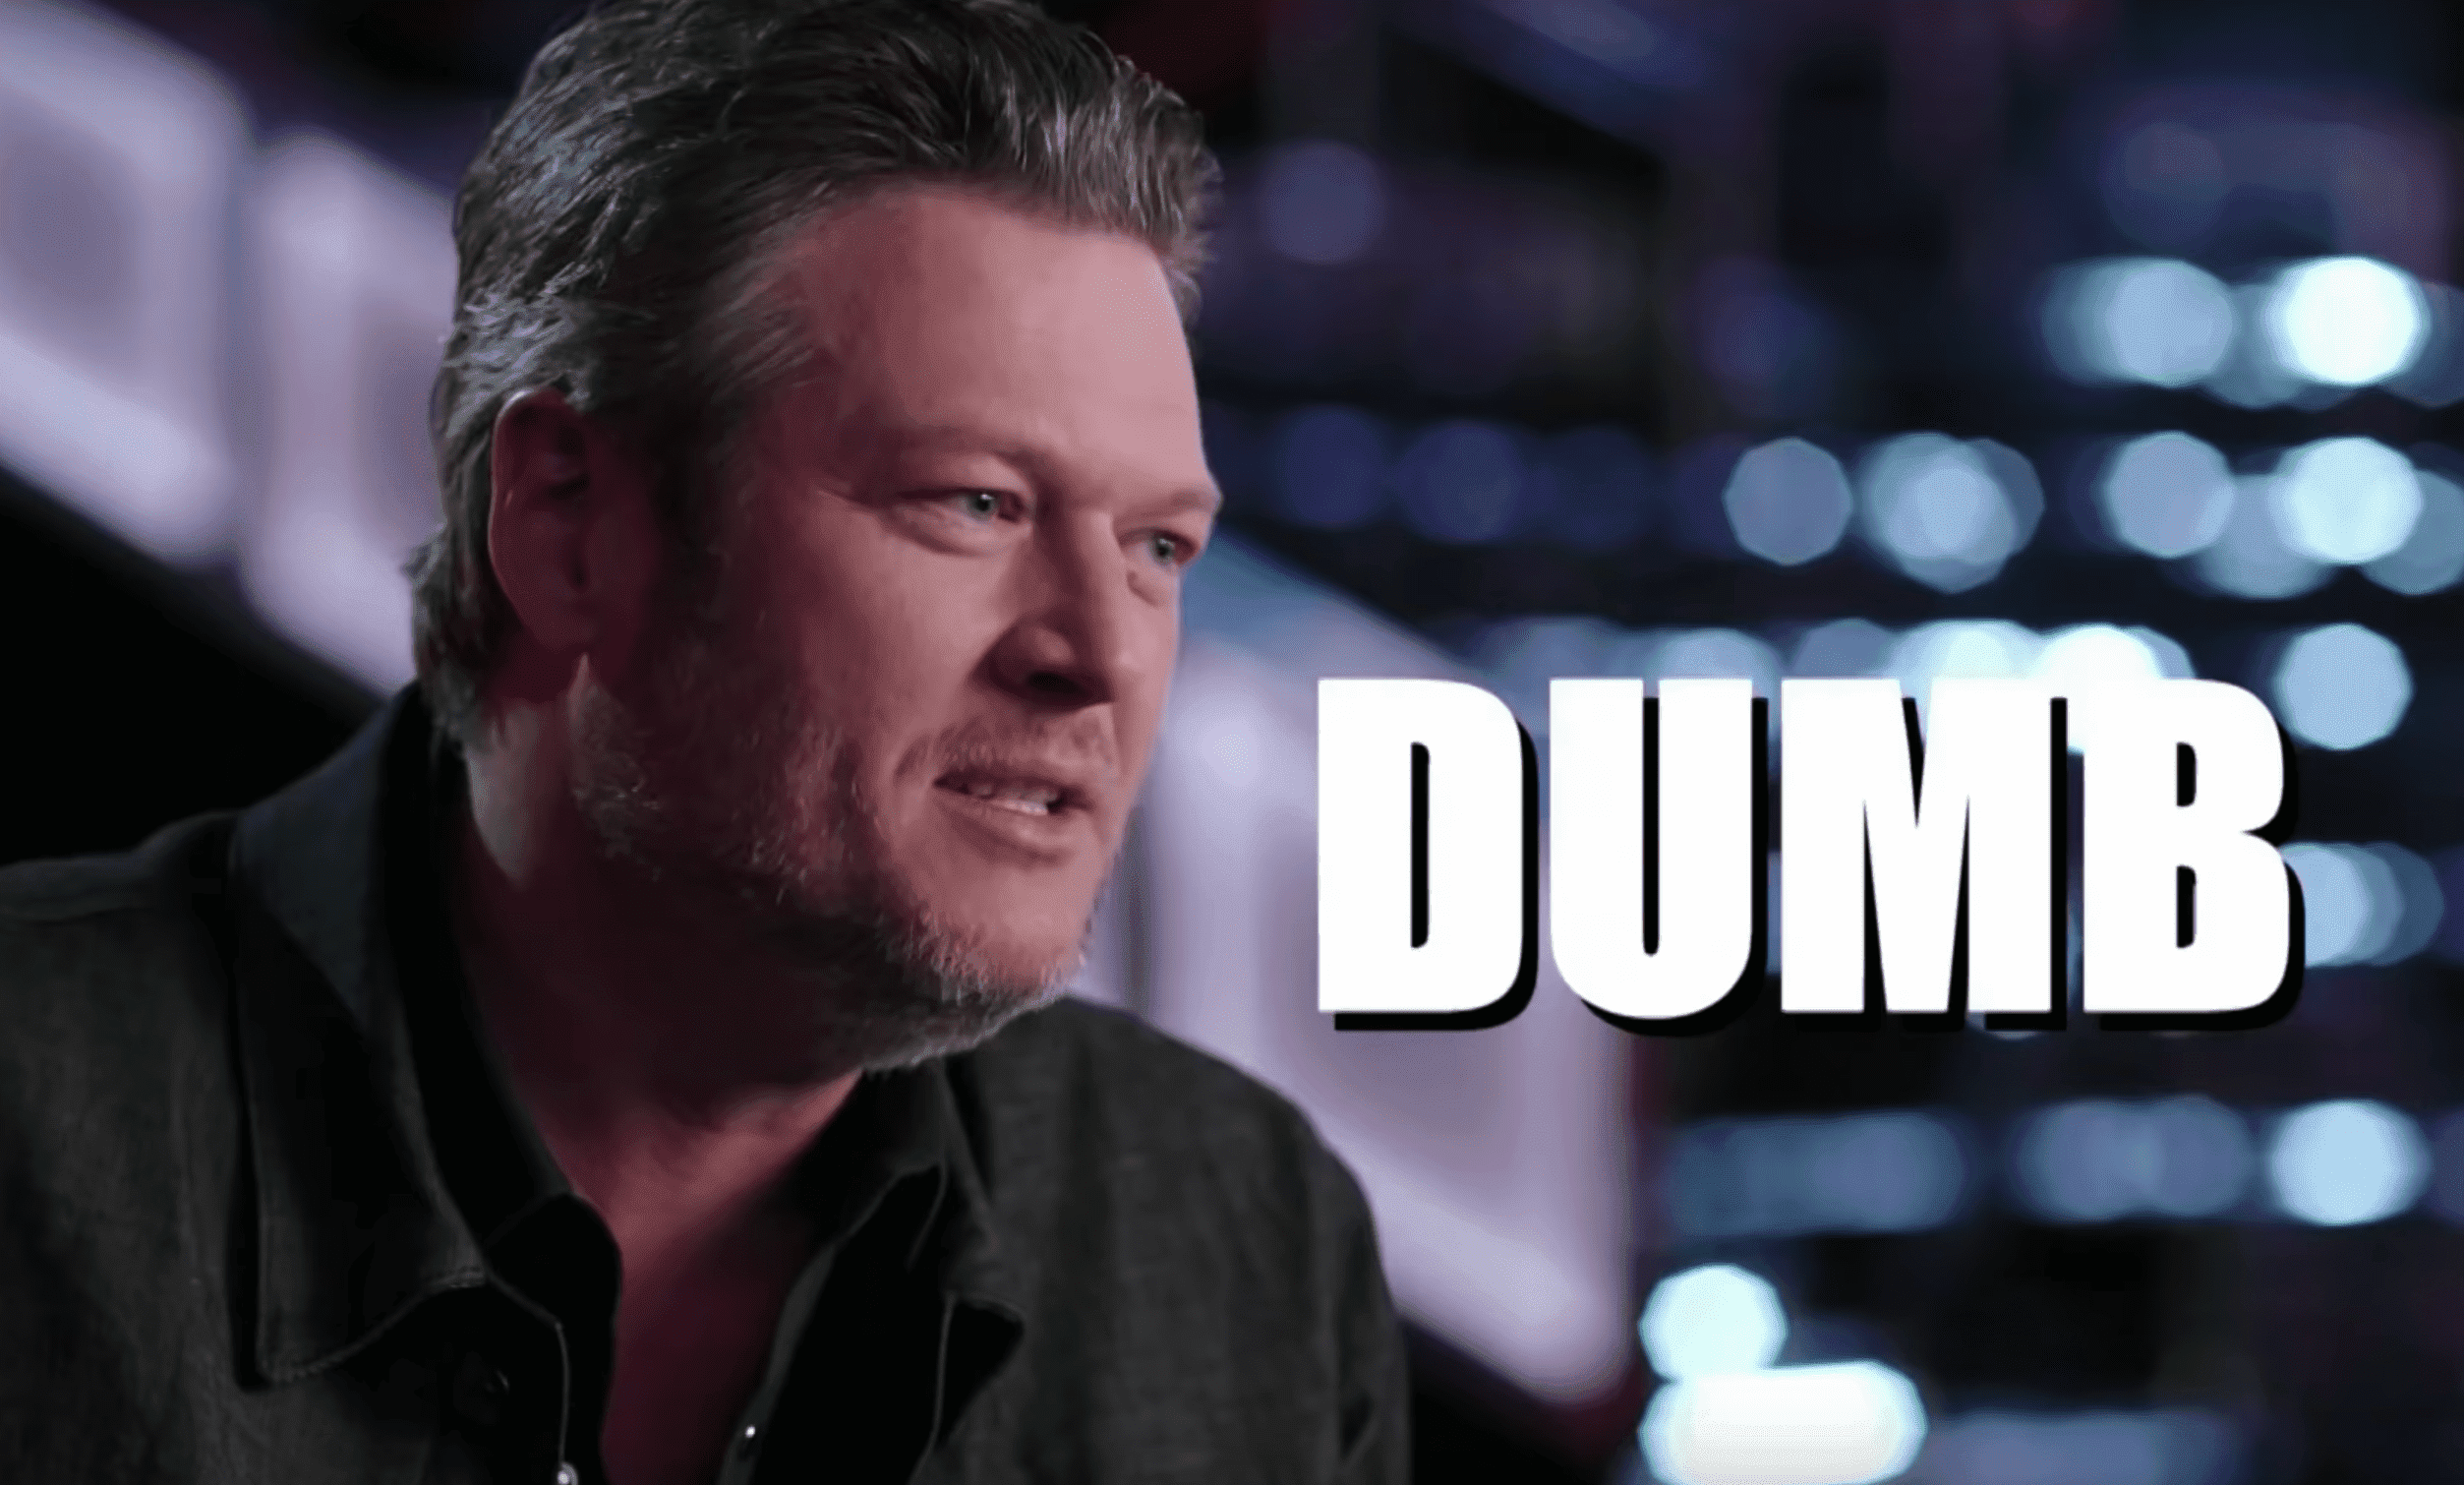 Blake Shelton in the set of 'The Voice'.   Source: YouTube/TheVoice